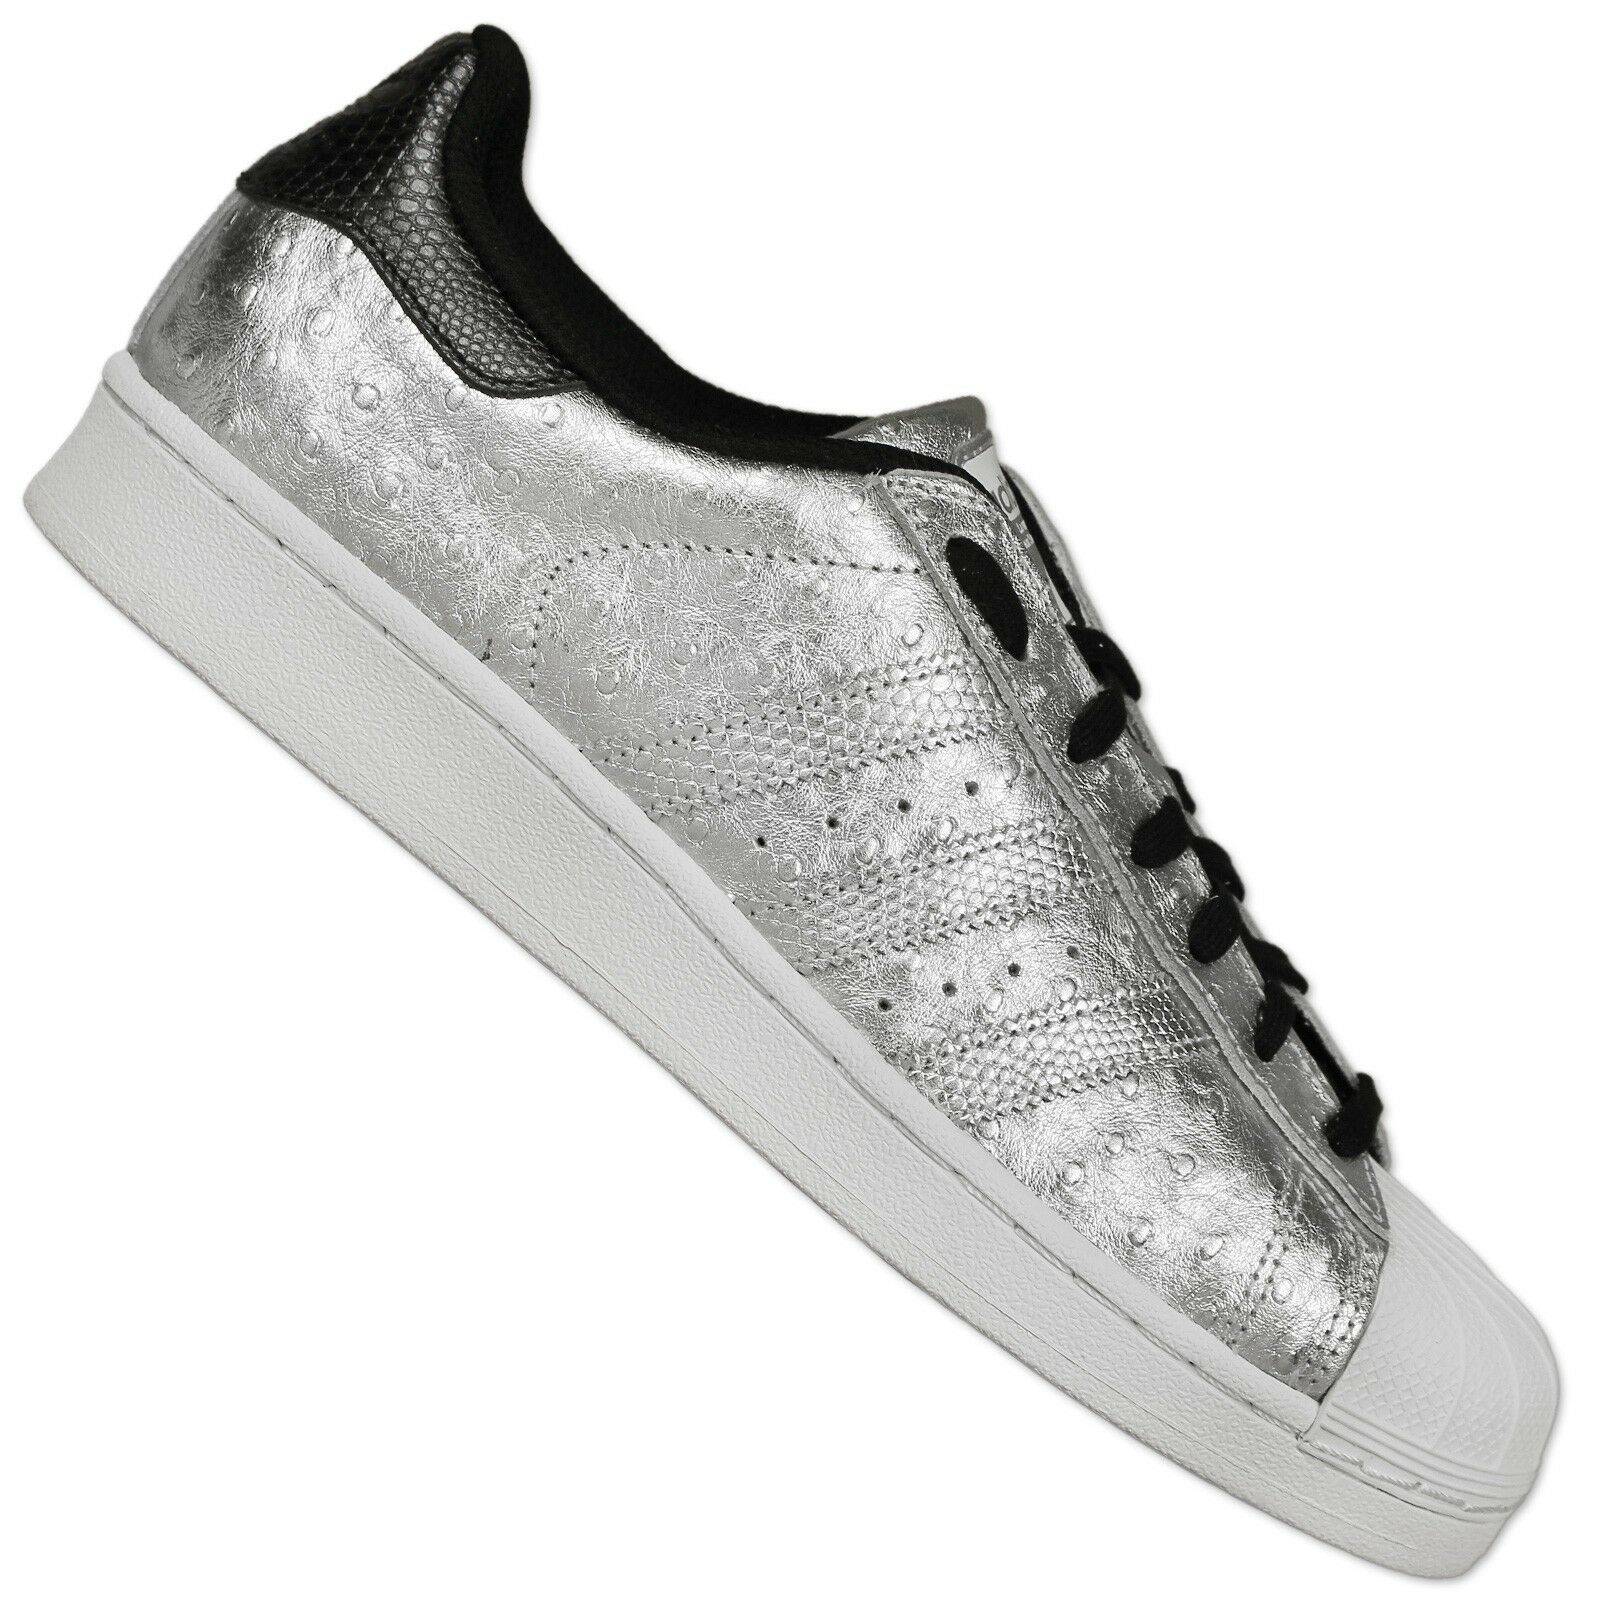 Adidas Originals Superstar plata Zapatillas Deportivas Party AVESTRUZ plata Superstar metal 42 b334ff